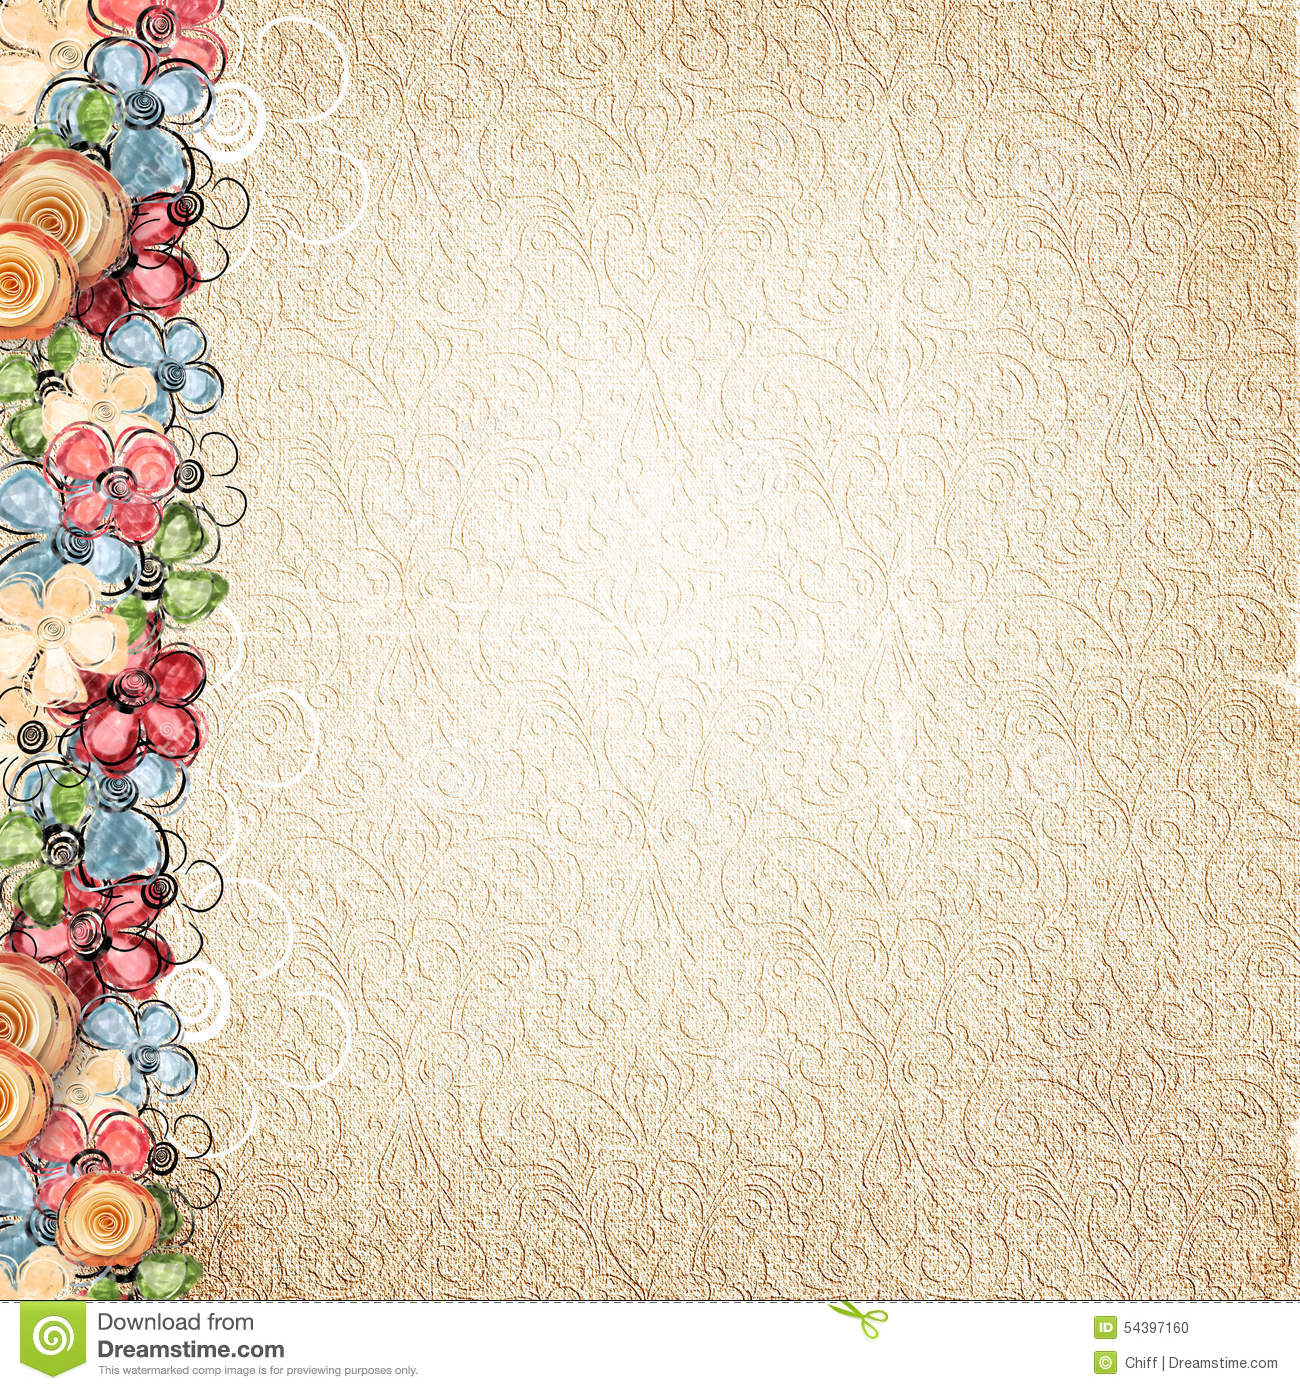 Book Cover Design Flower : Vintage background with flowers border stock photo image